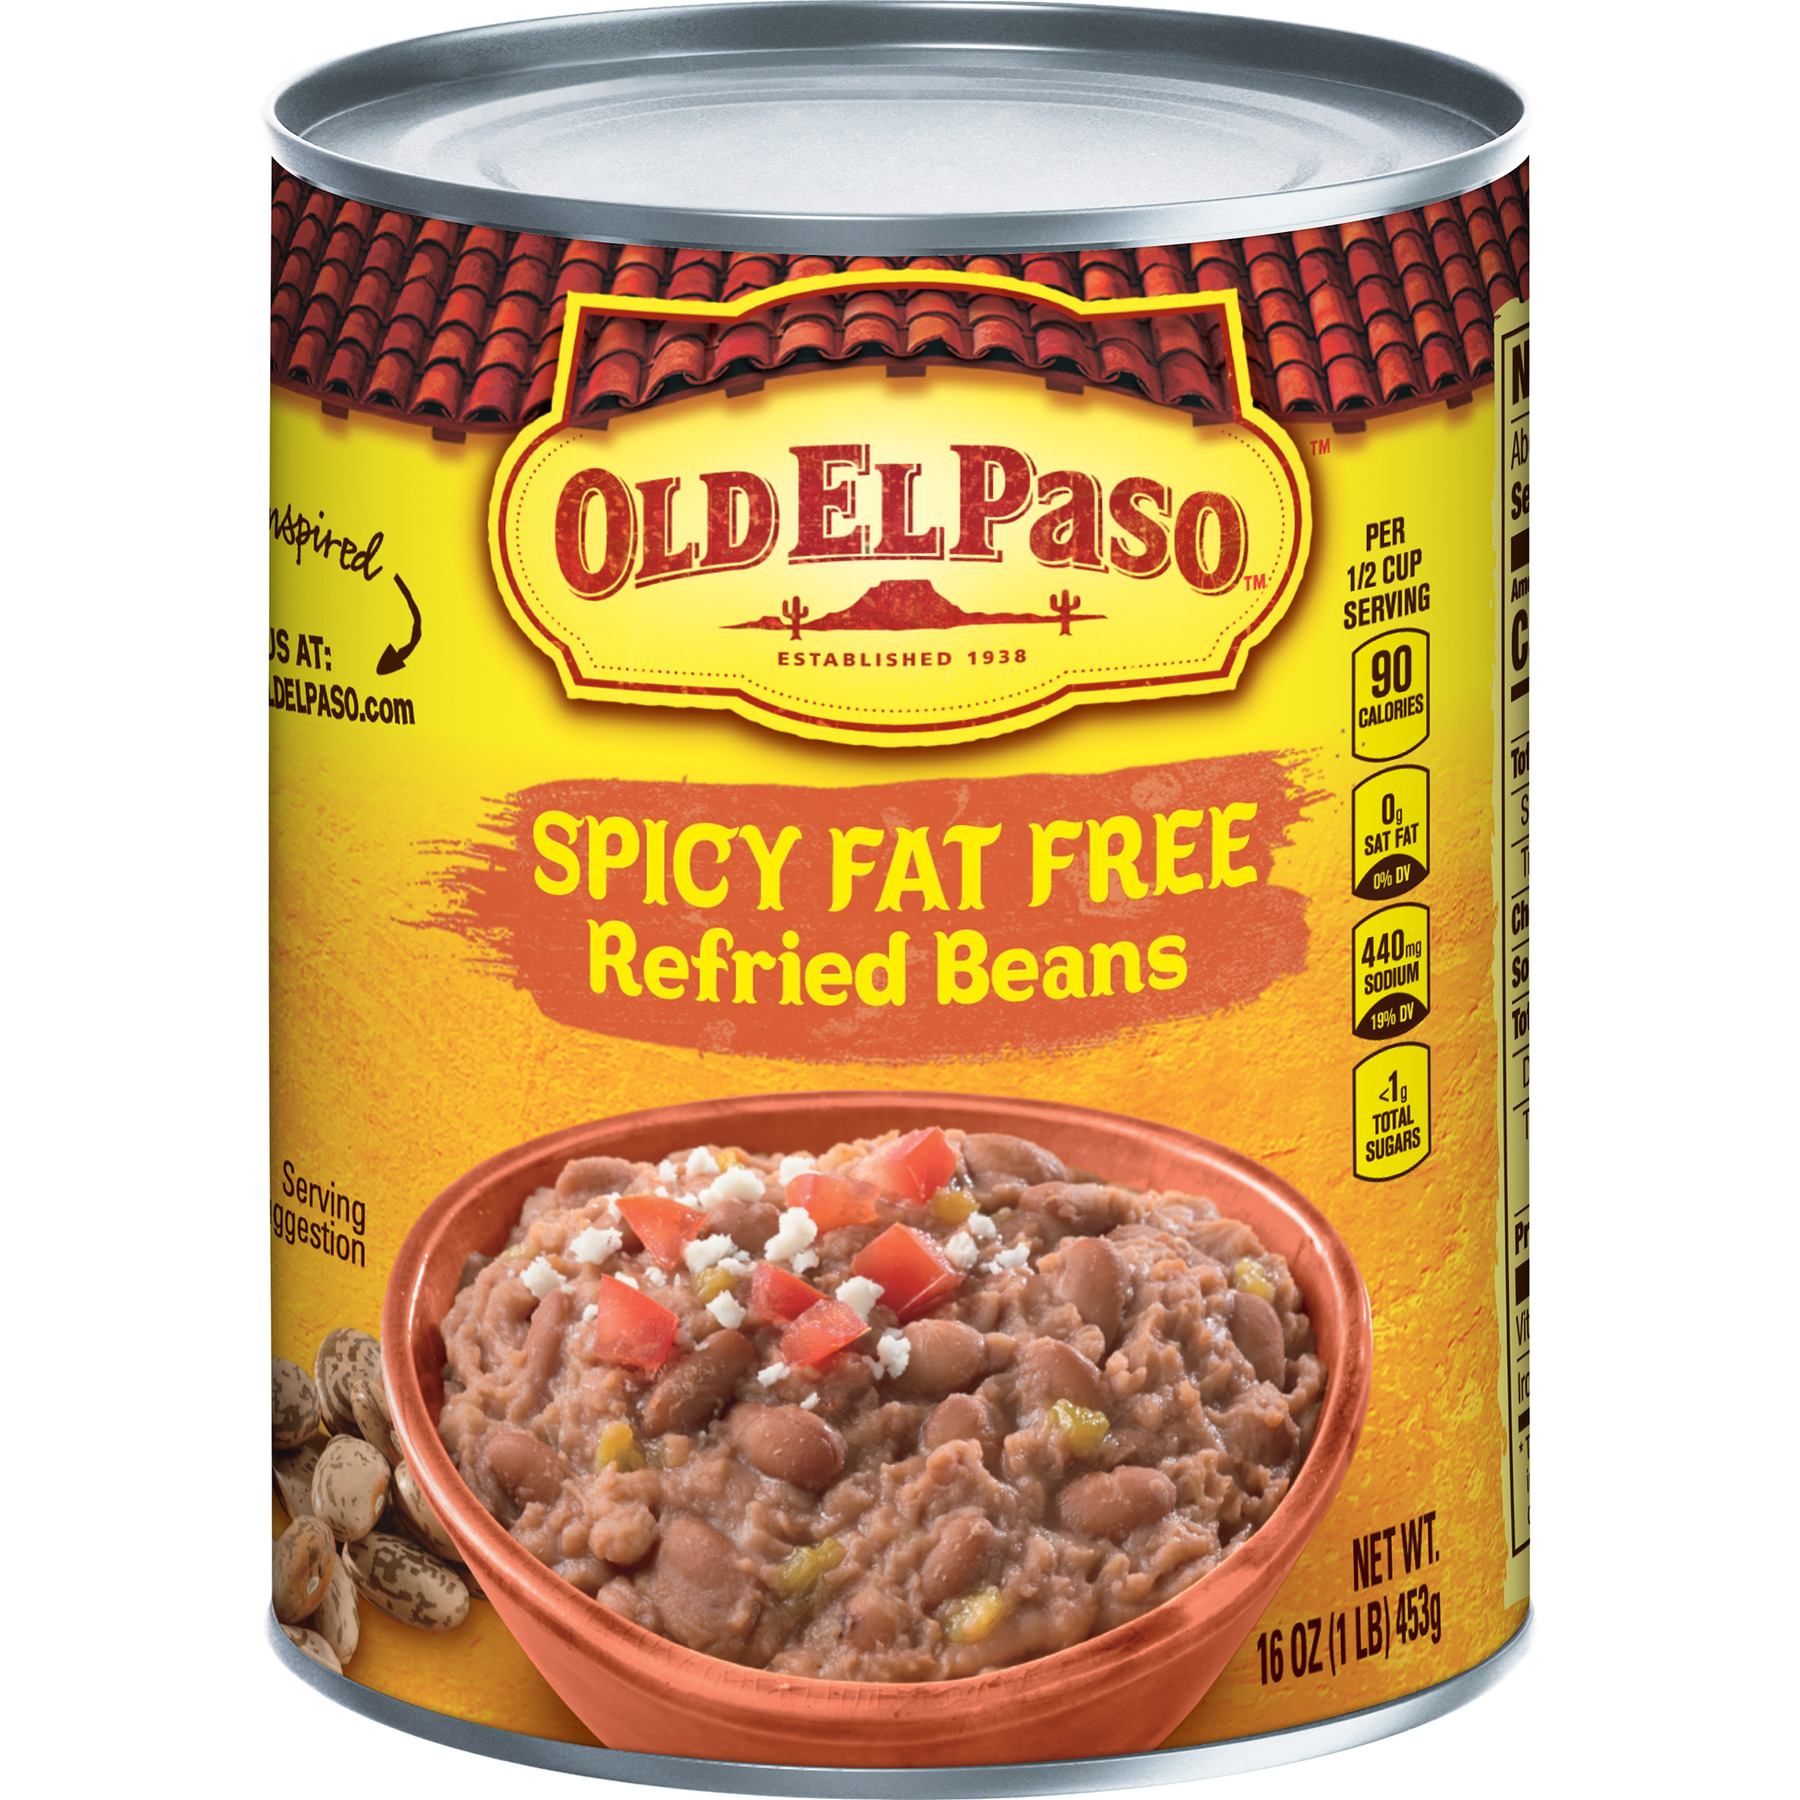 Old El Paso Spicy Fat Free Refried Beans, 16 oz Can